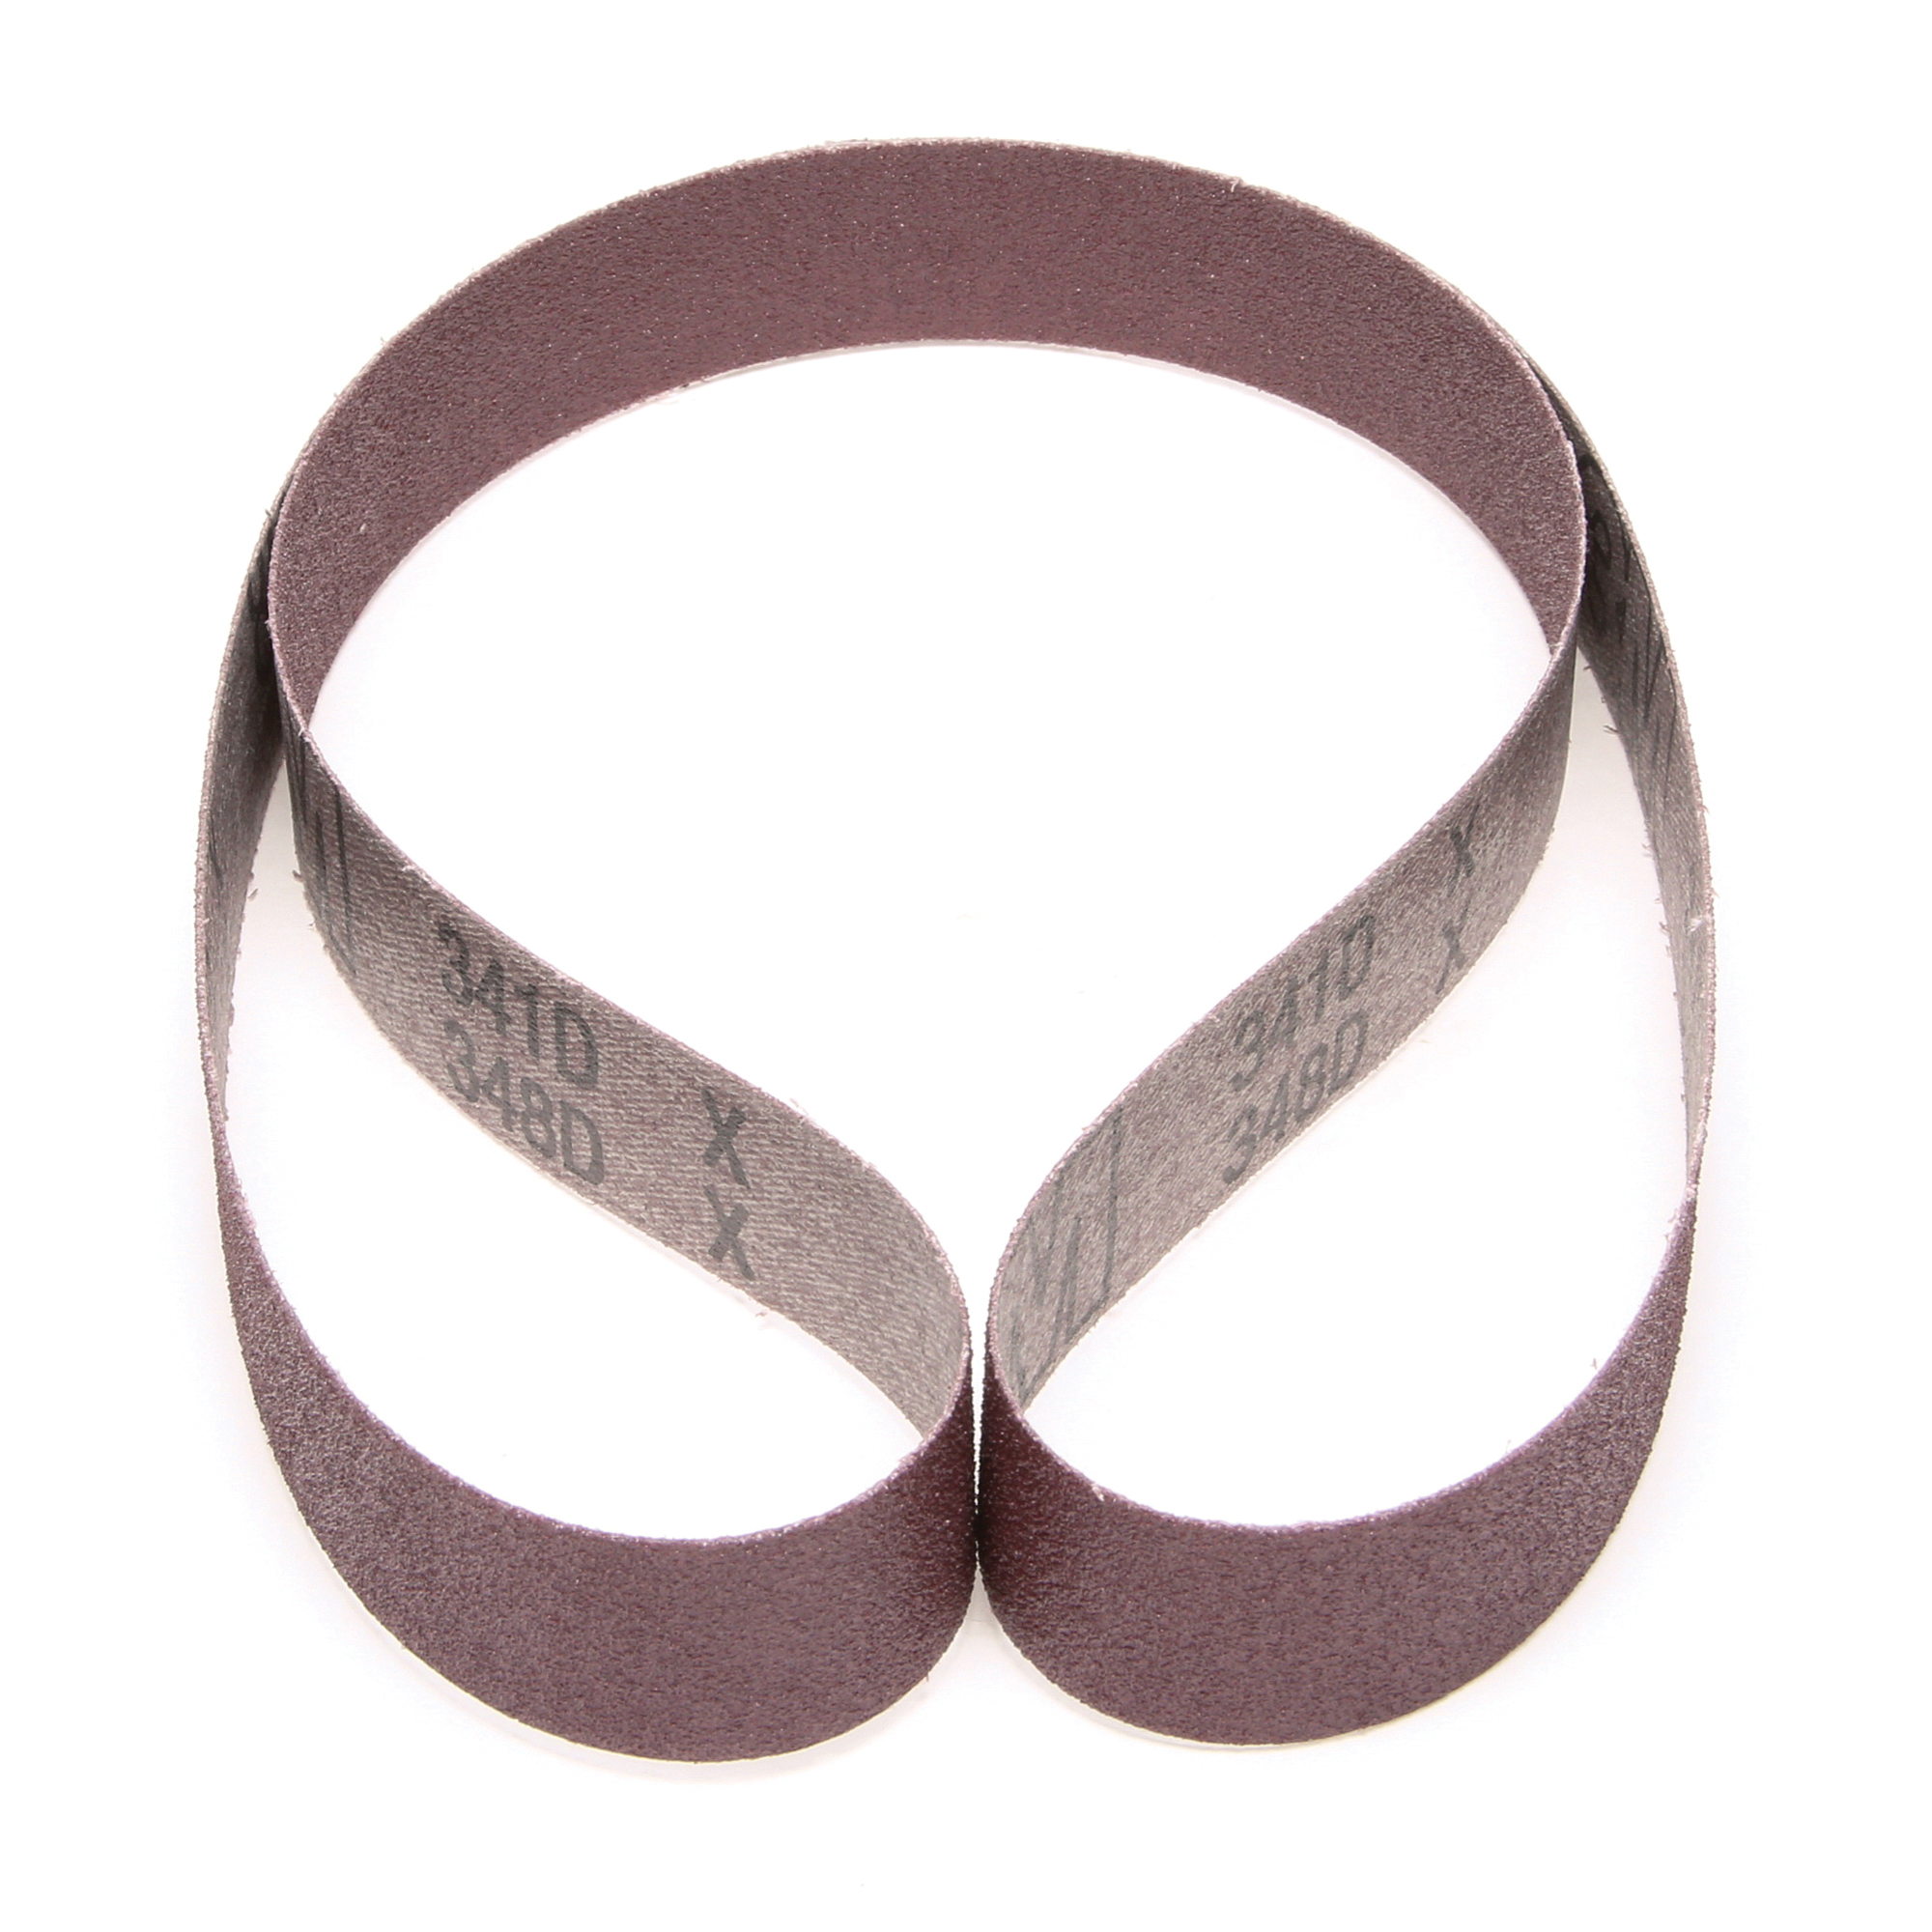 3M™ 051115-66621 341D Narrow Abrasive Belt, 1 in W x 42 in L, 80 Grit, Medium Grade, Aluminum Oxide Abrasive, Cloth Backing